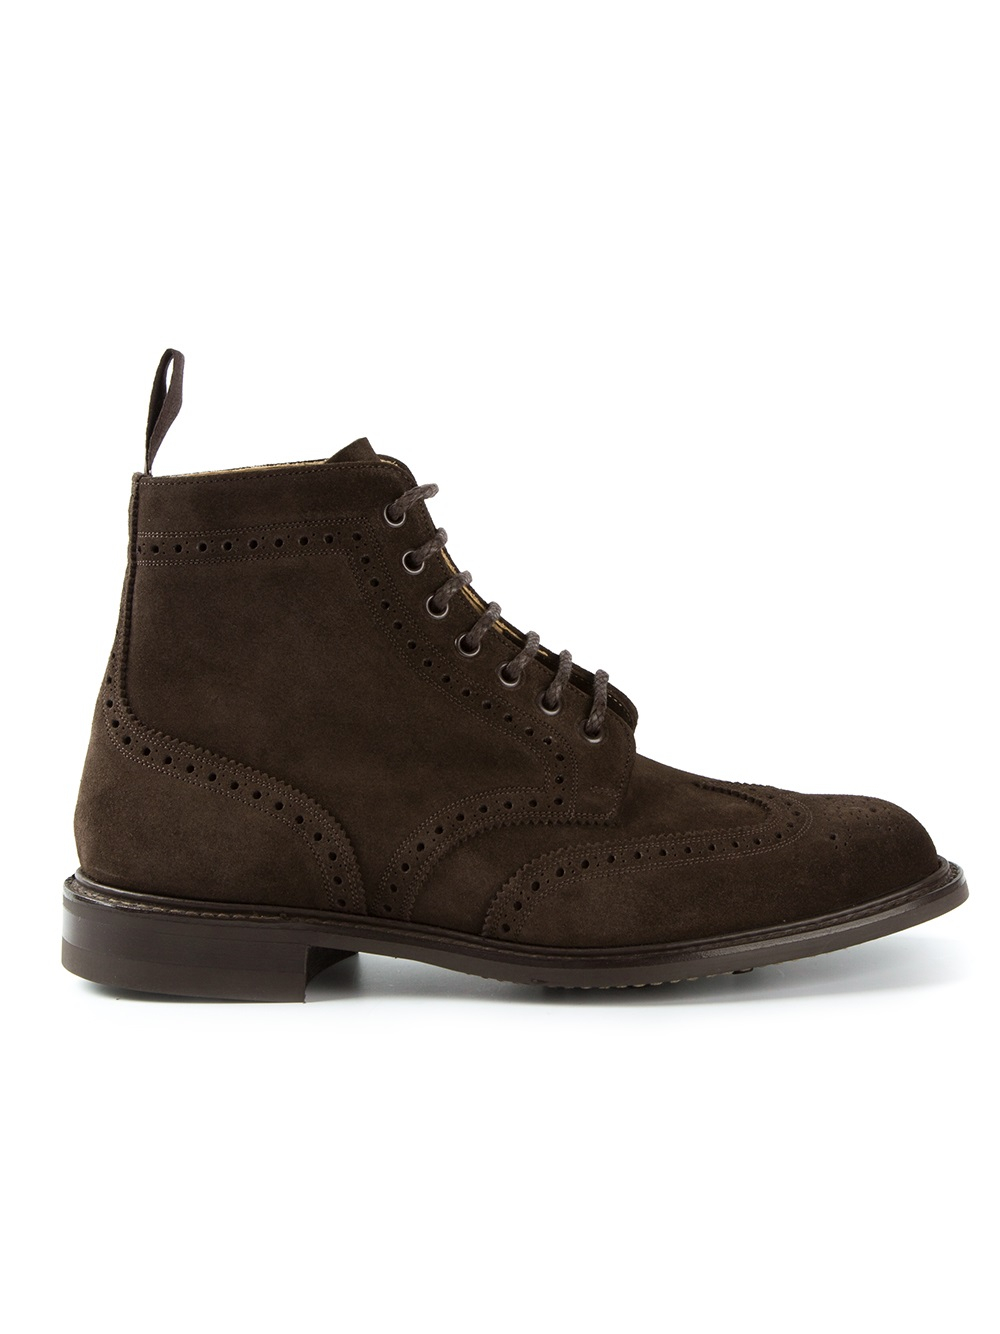 church s caldecott brogue boots in brown for lyst